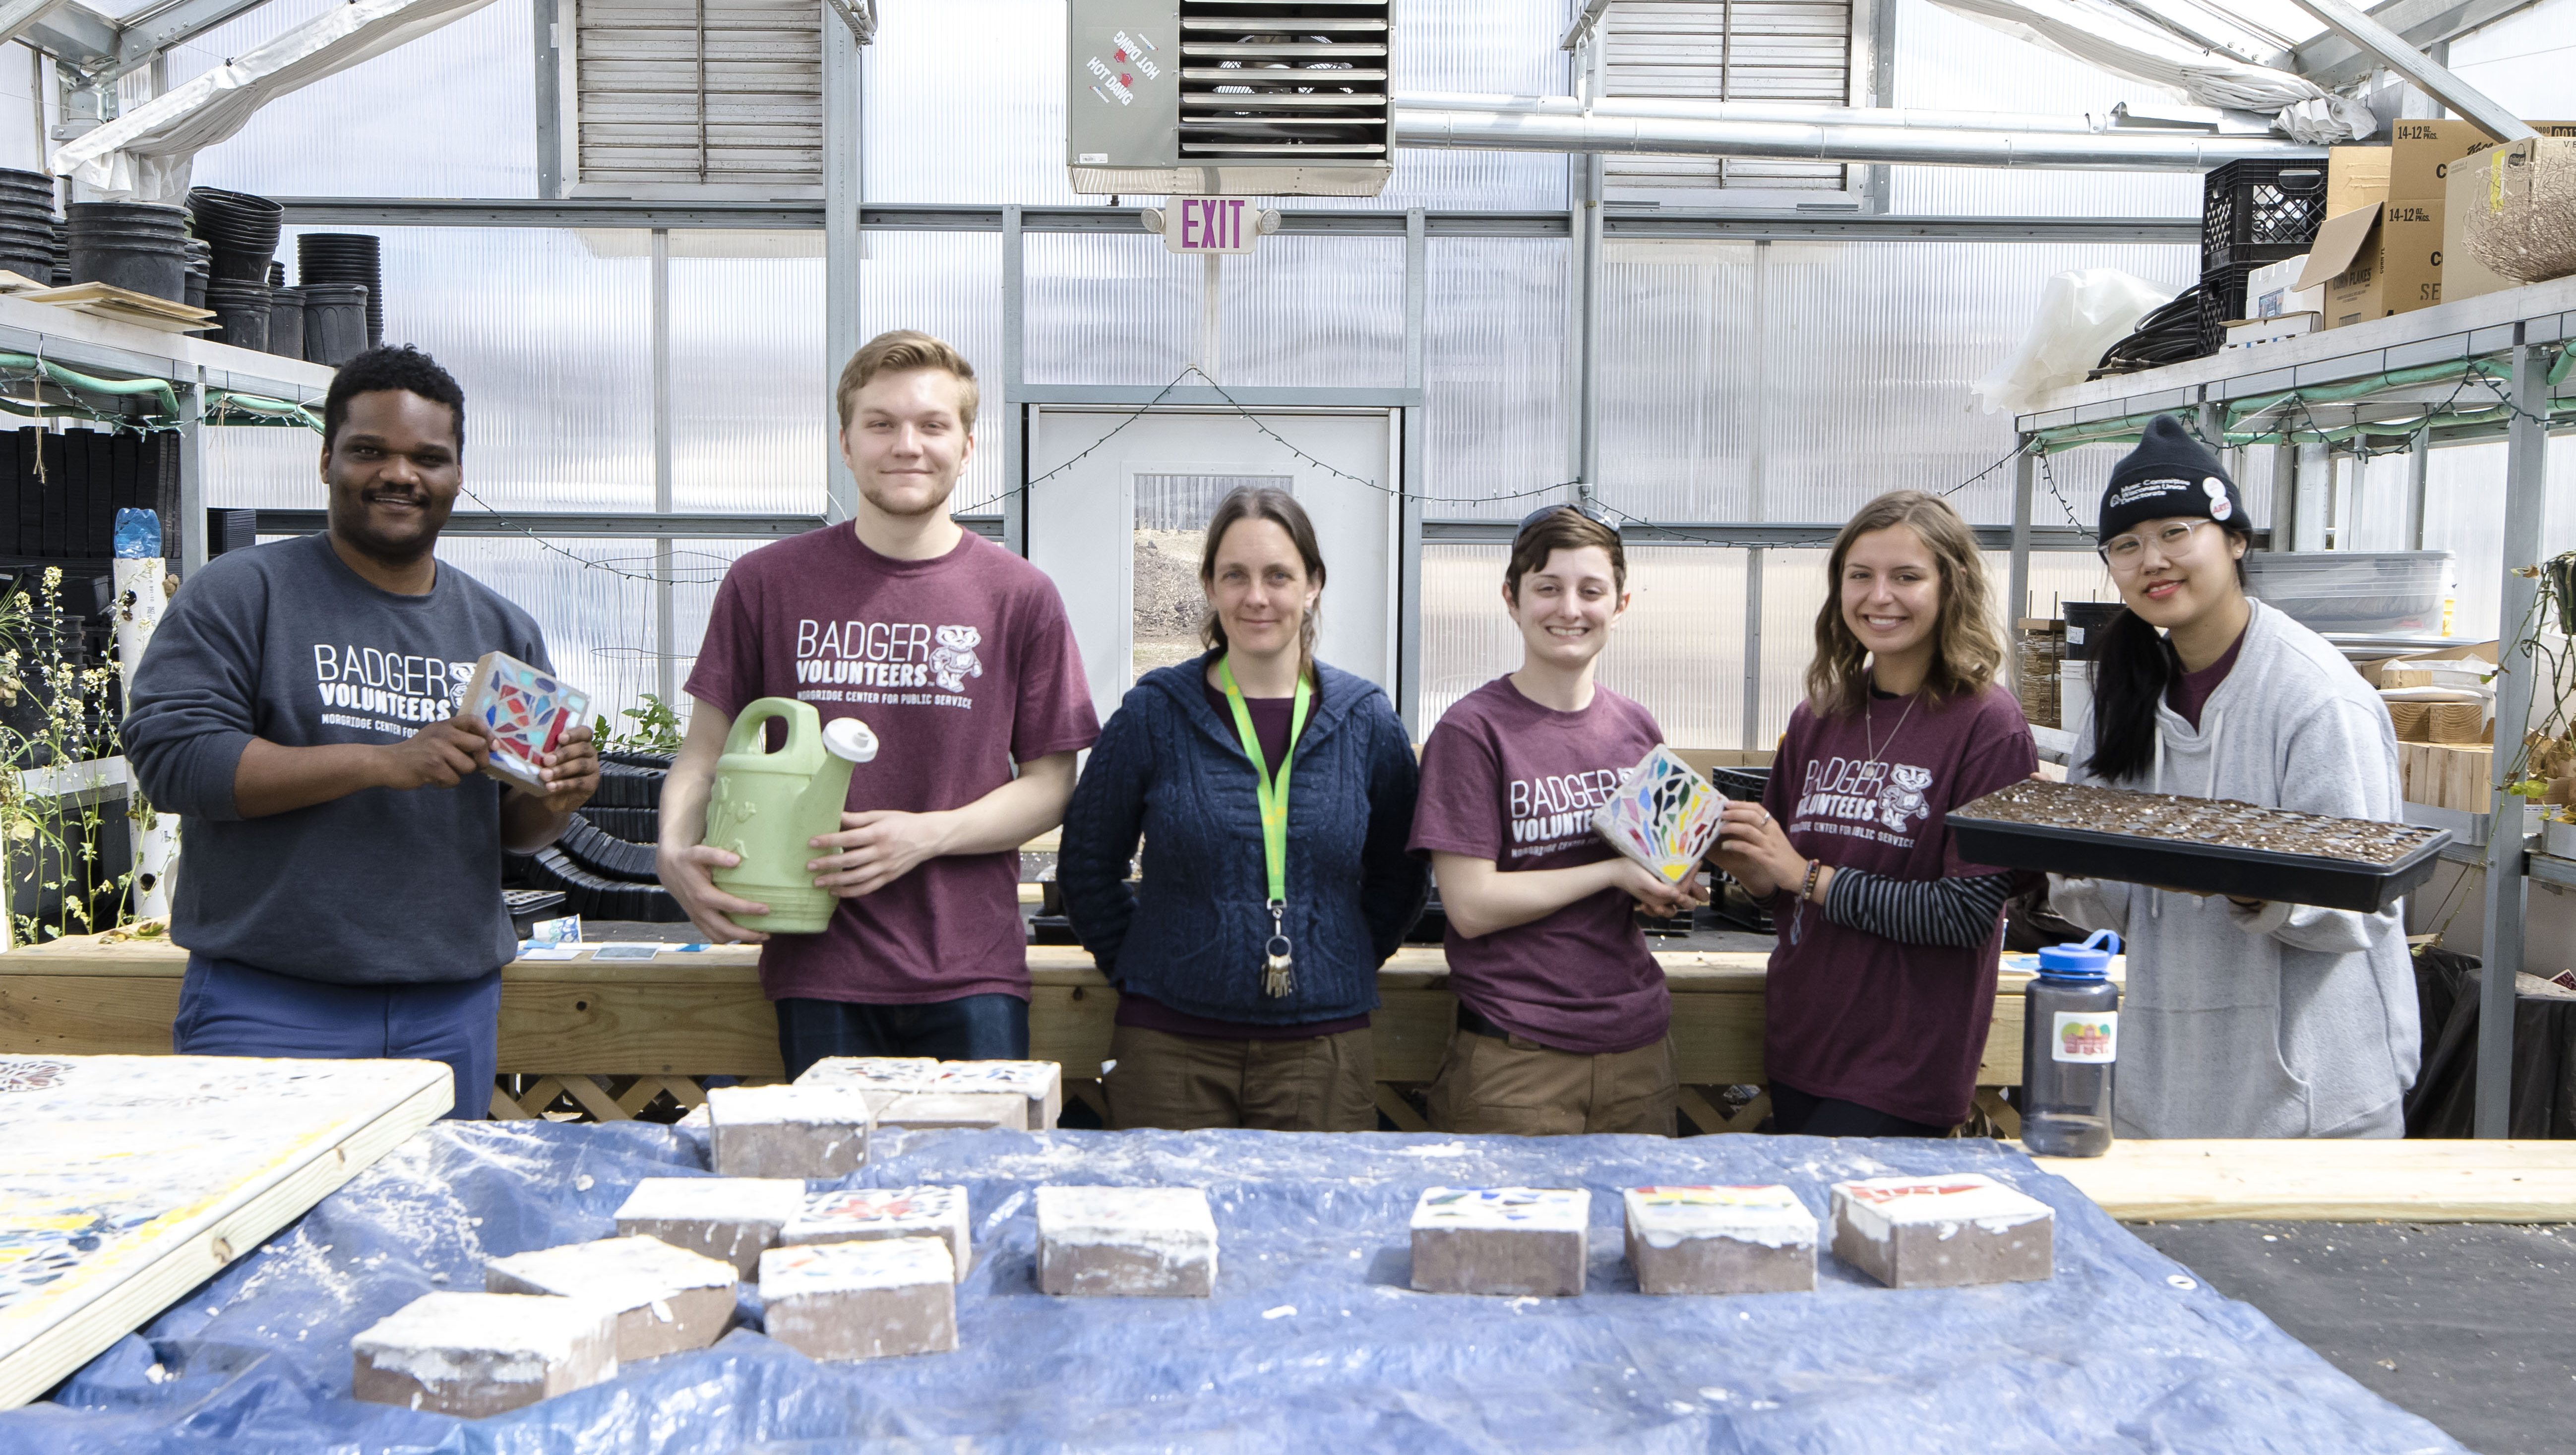 Students volunteering at the Center for Resilient Cities